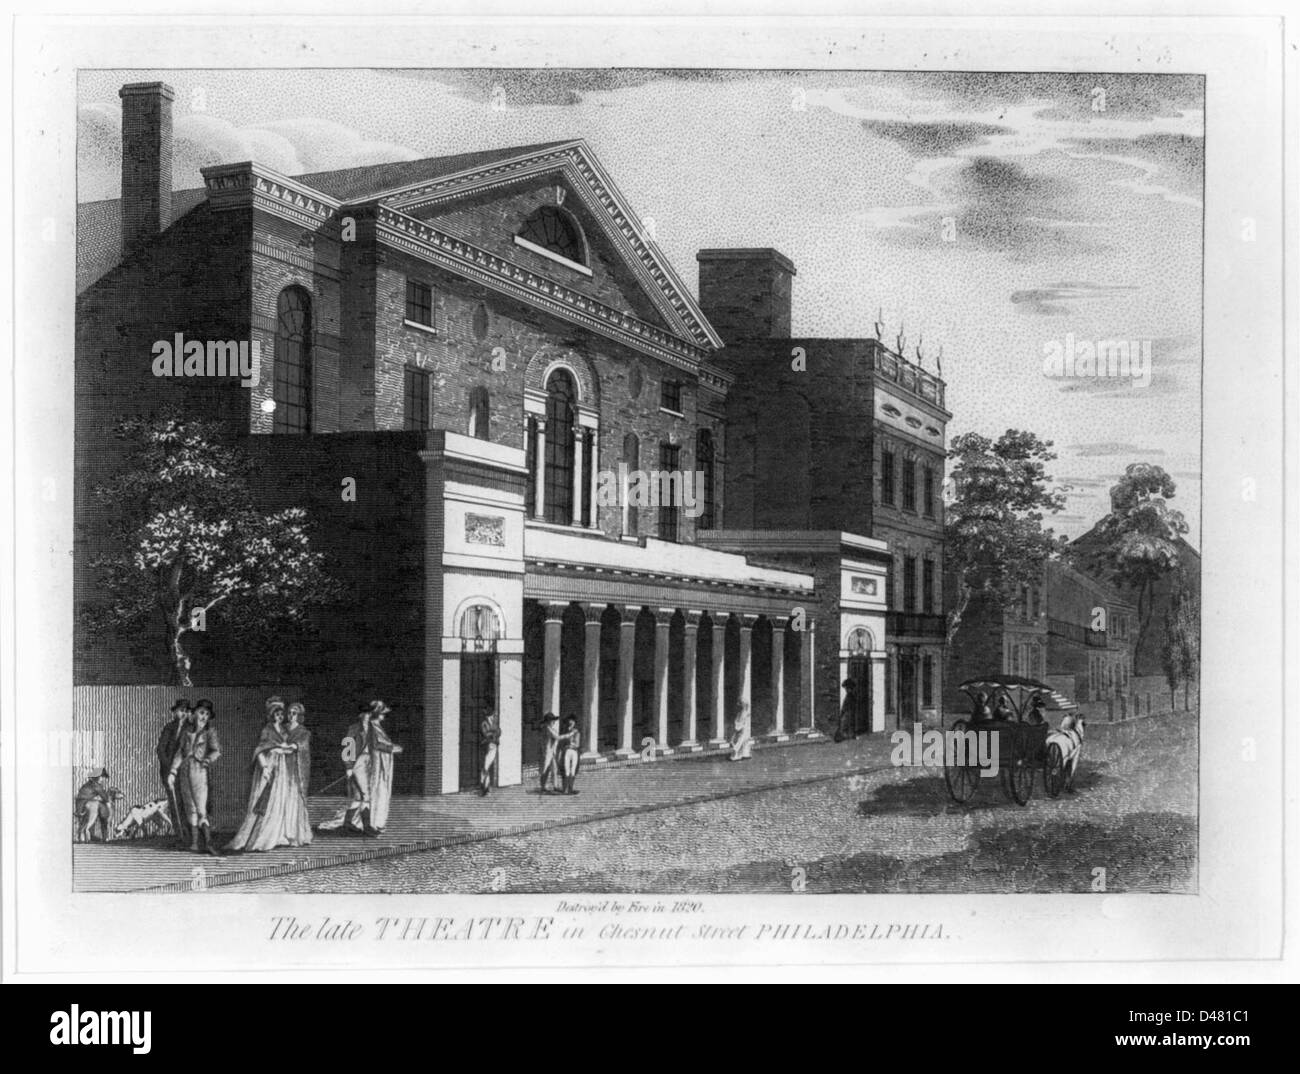 The late theatre in Chestnut Street, Philadelphia. Destroyed by Fire in 1820 - Stock Image